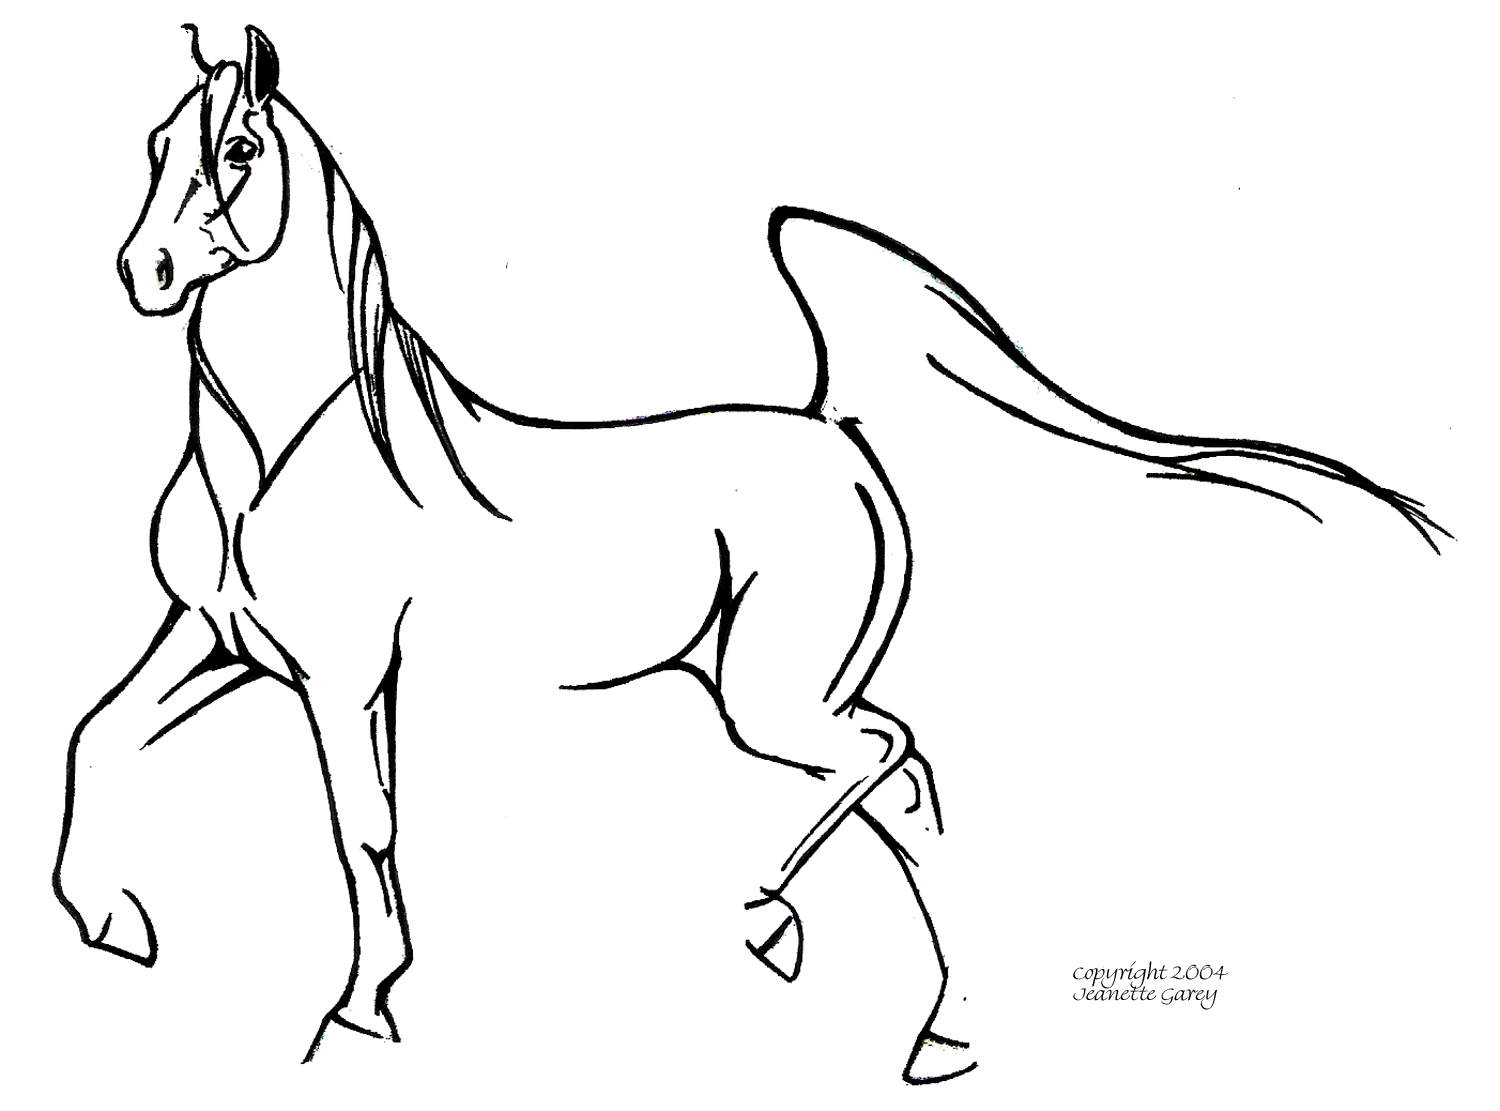 arabian line drawing by ashwin24 on deviantart